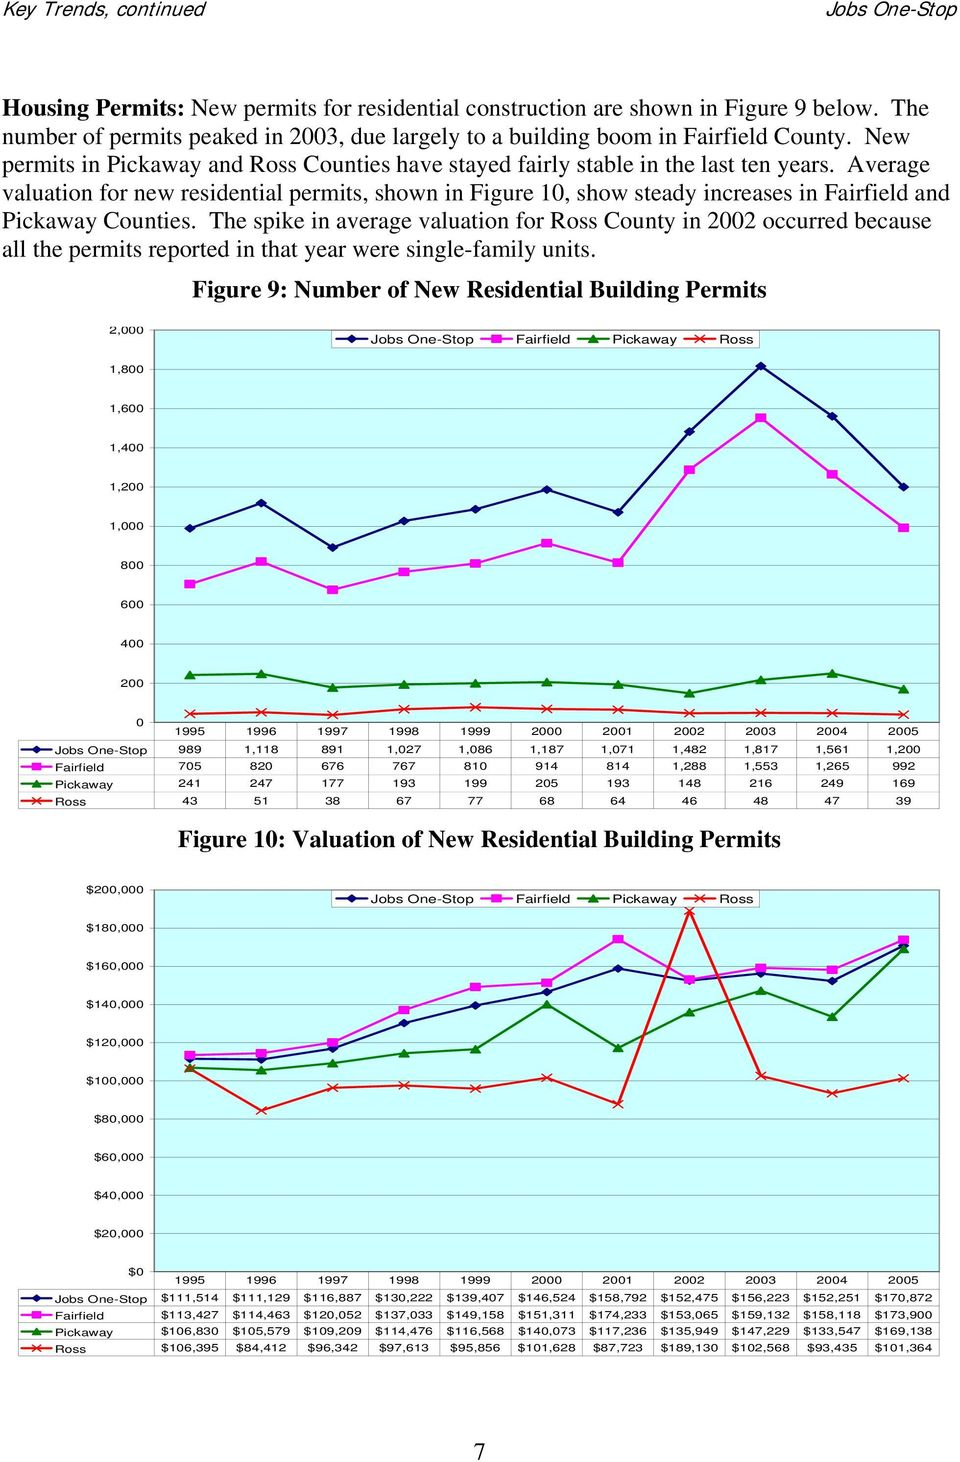 Average valuation for new residential permits, shown in Figure 10, show steady increases in Fairfield and Pickaway Counties.